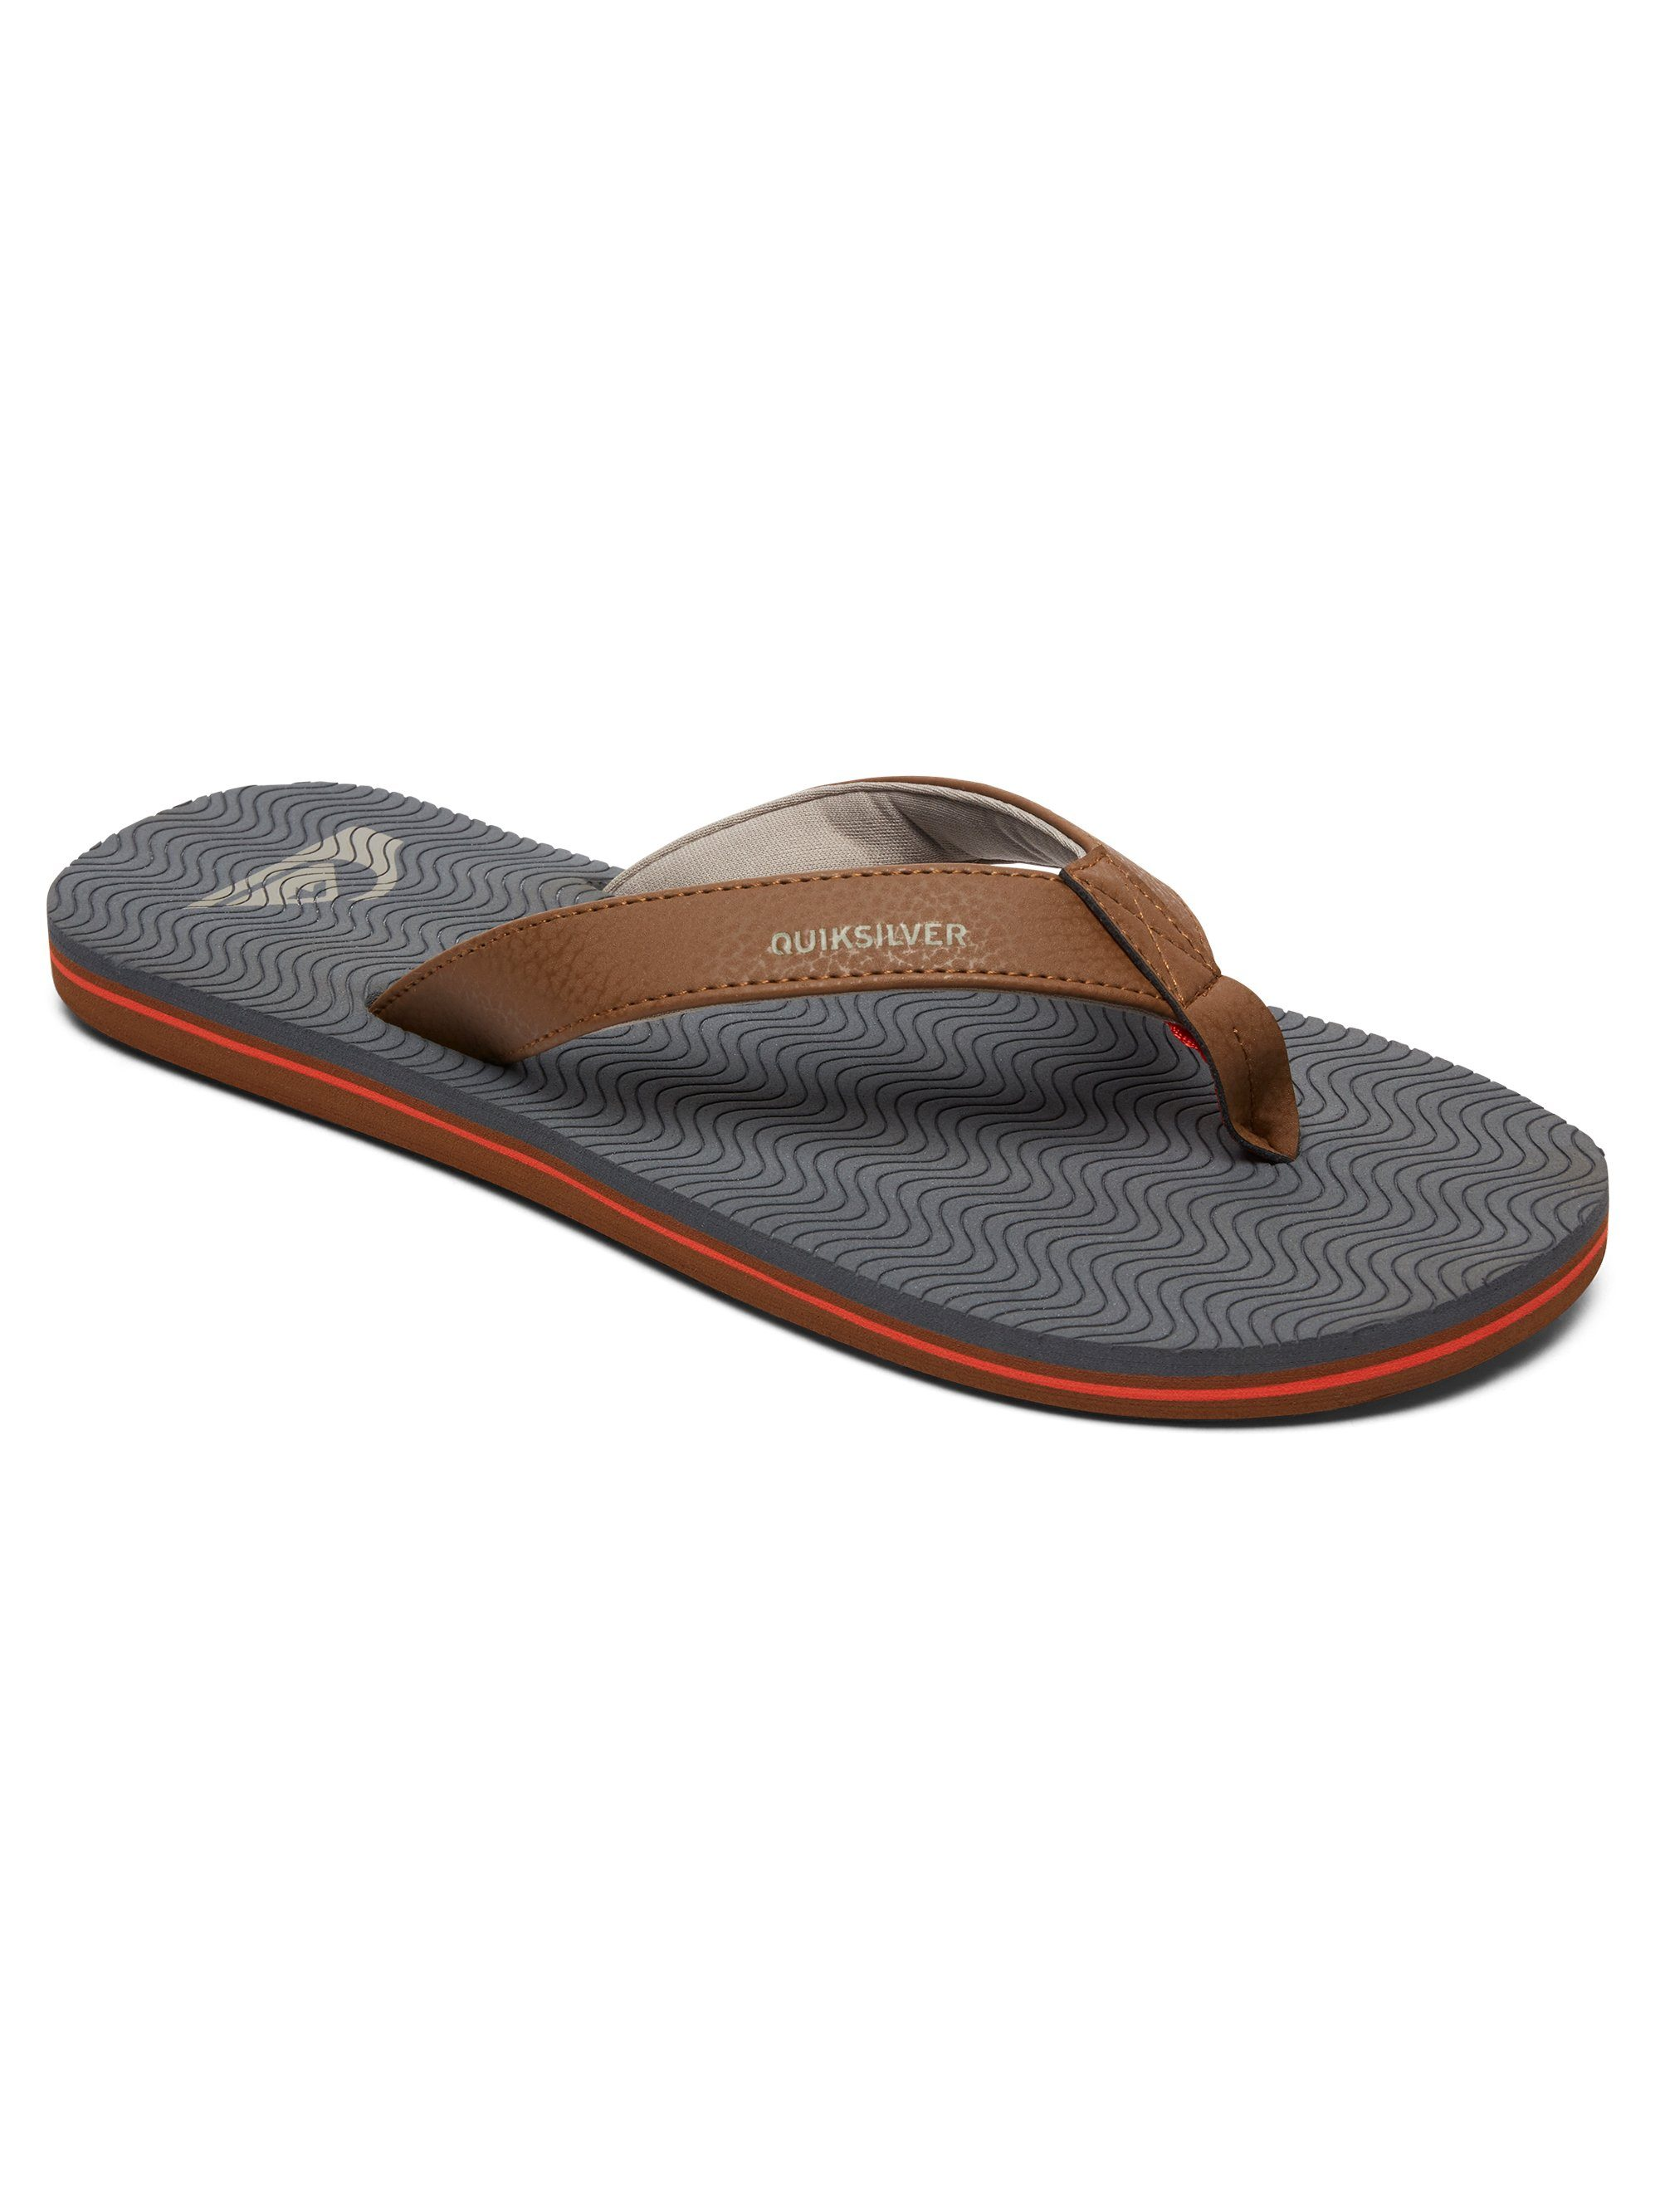 Quiksilver Sandalen Molokai Laser Grip kaufen  Grey#ft5_slash#grey#ft5_slash#orange